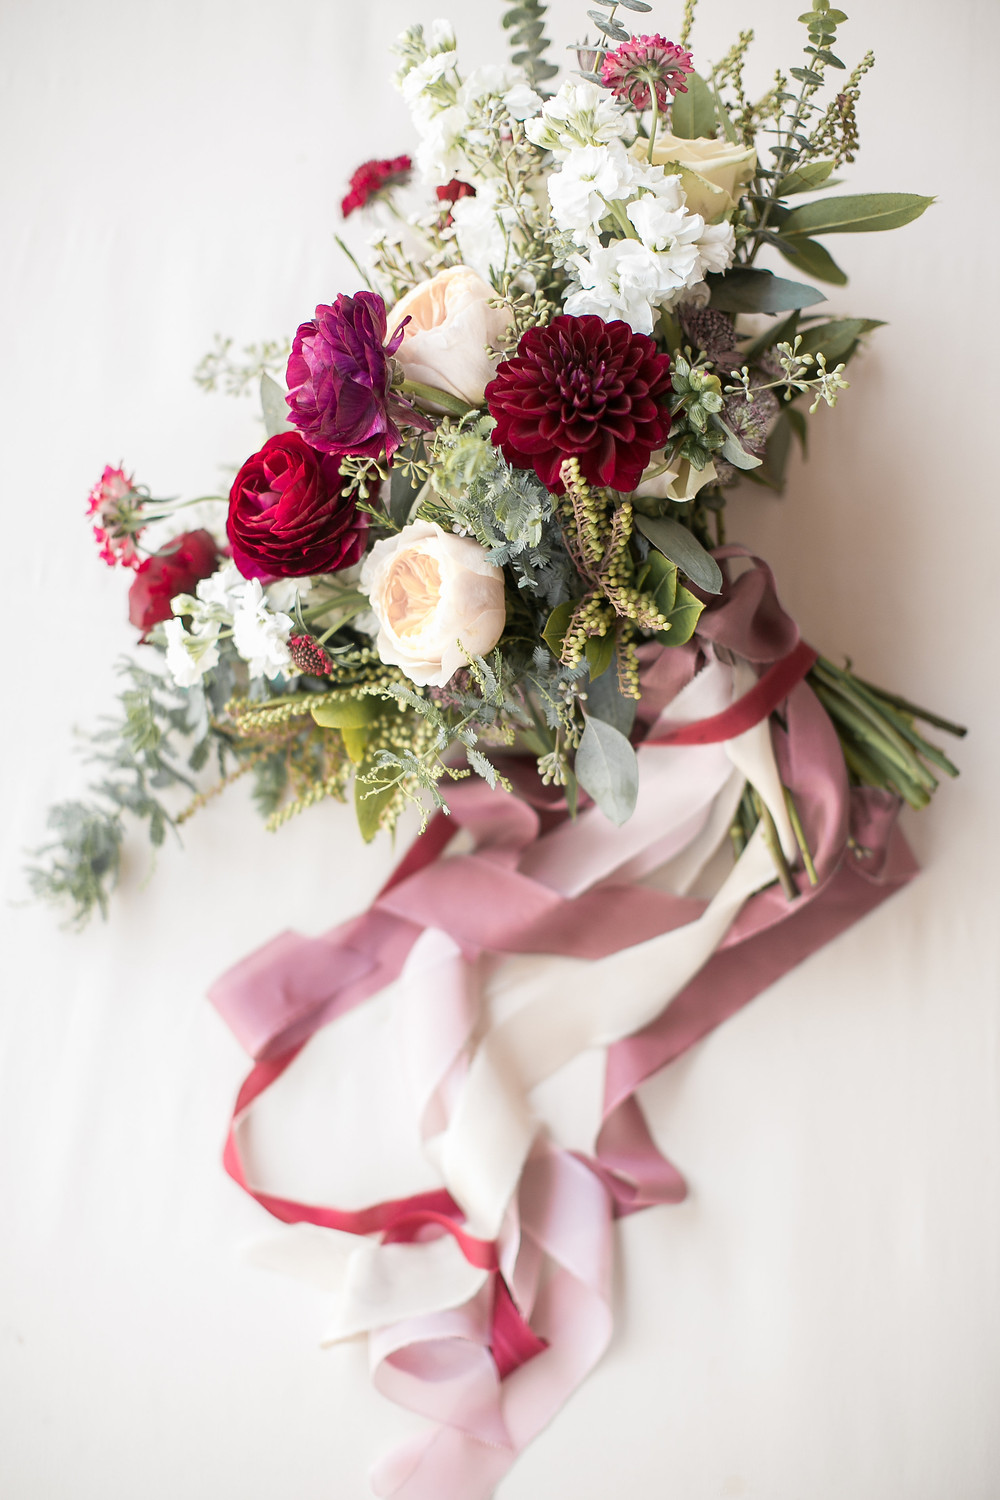 bridal bouquet by studio bloom iowa with dahlias, ranunculus, stock, and eucalyptus in burgundy and blush and trailing ribbon